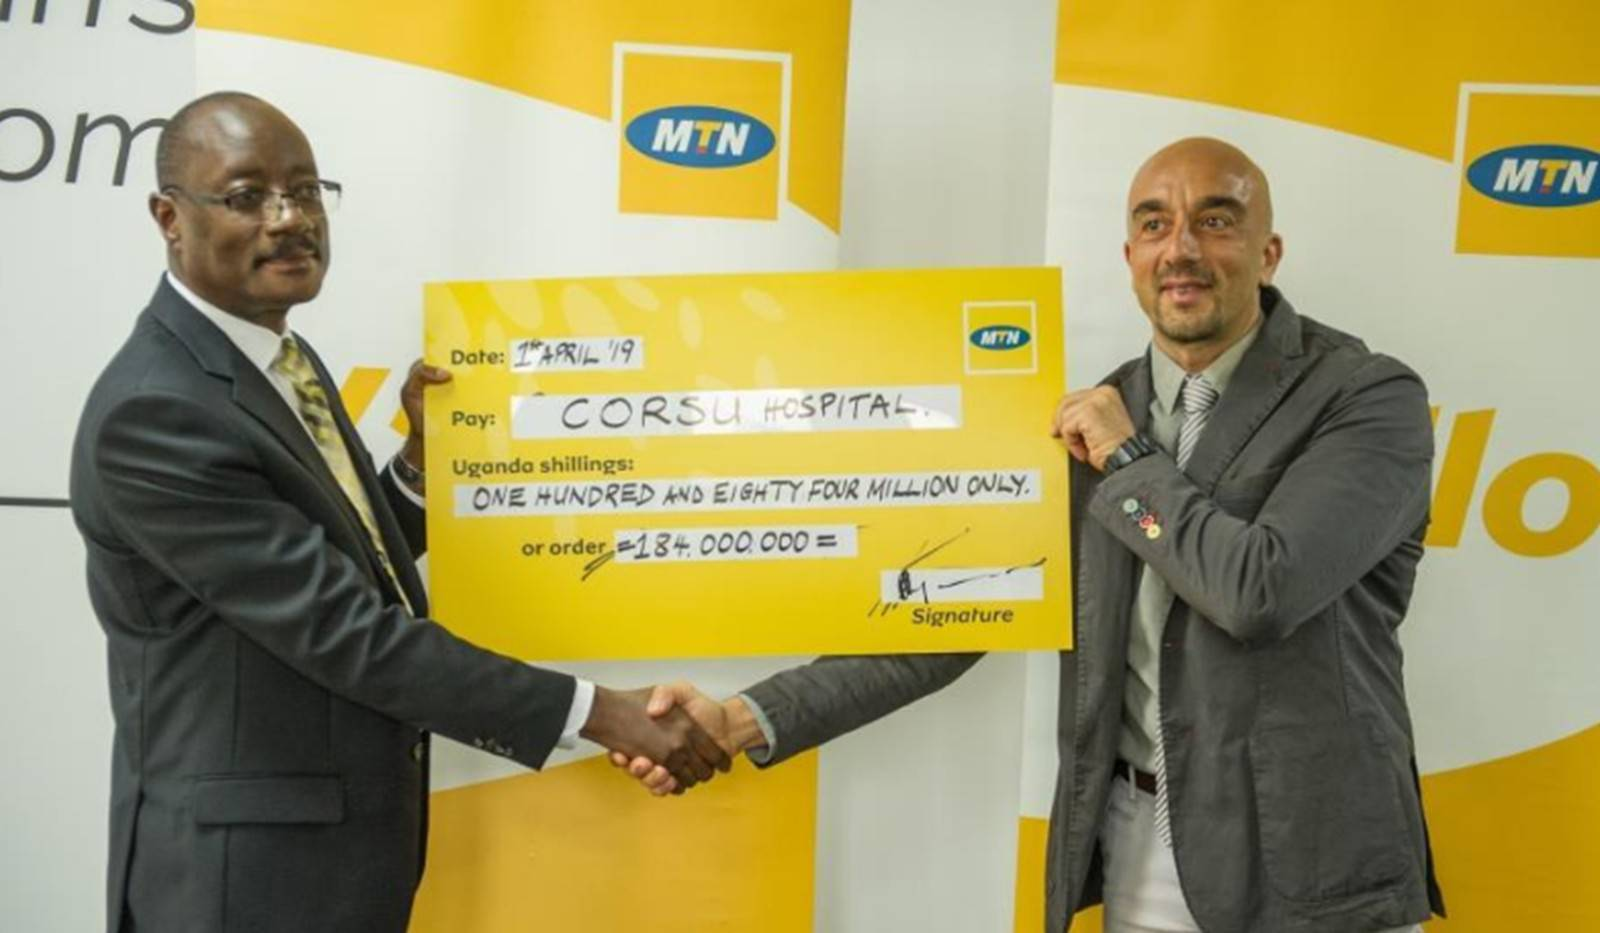 mtn ceo hands over a UGX 184 cheque to corsa